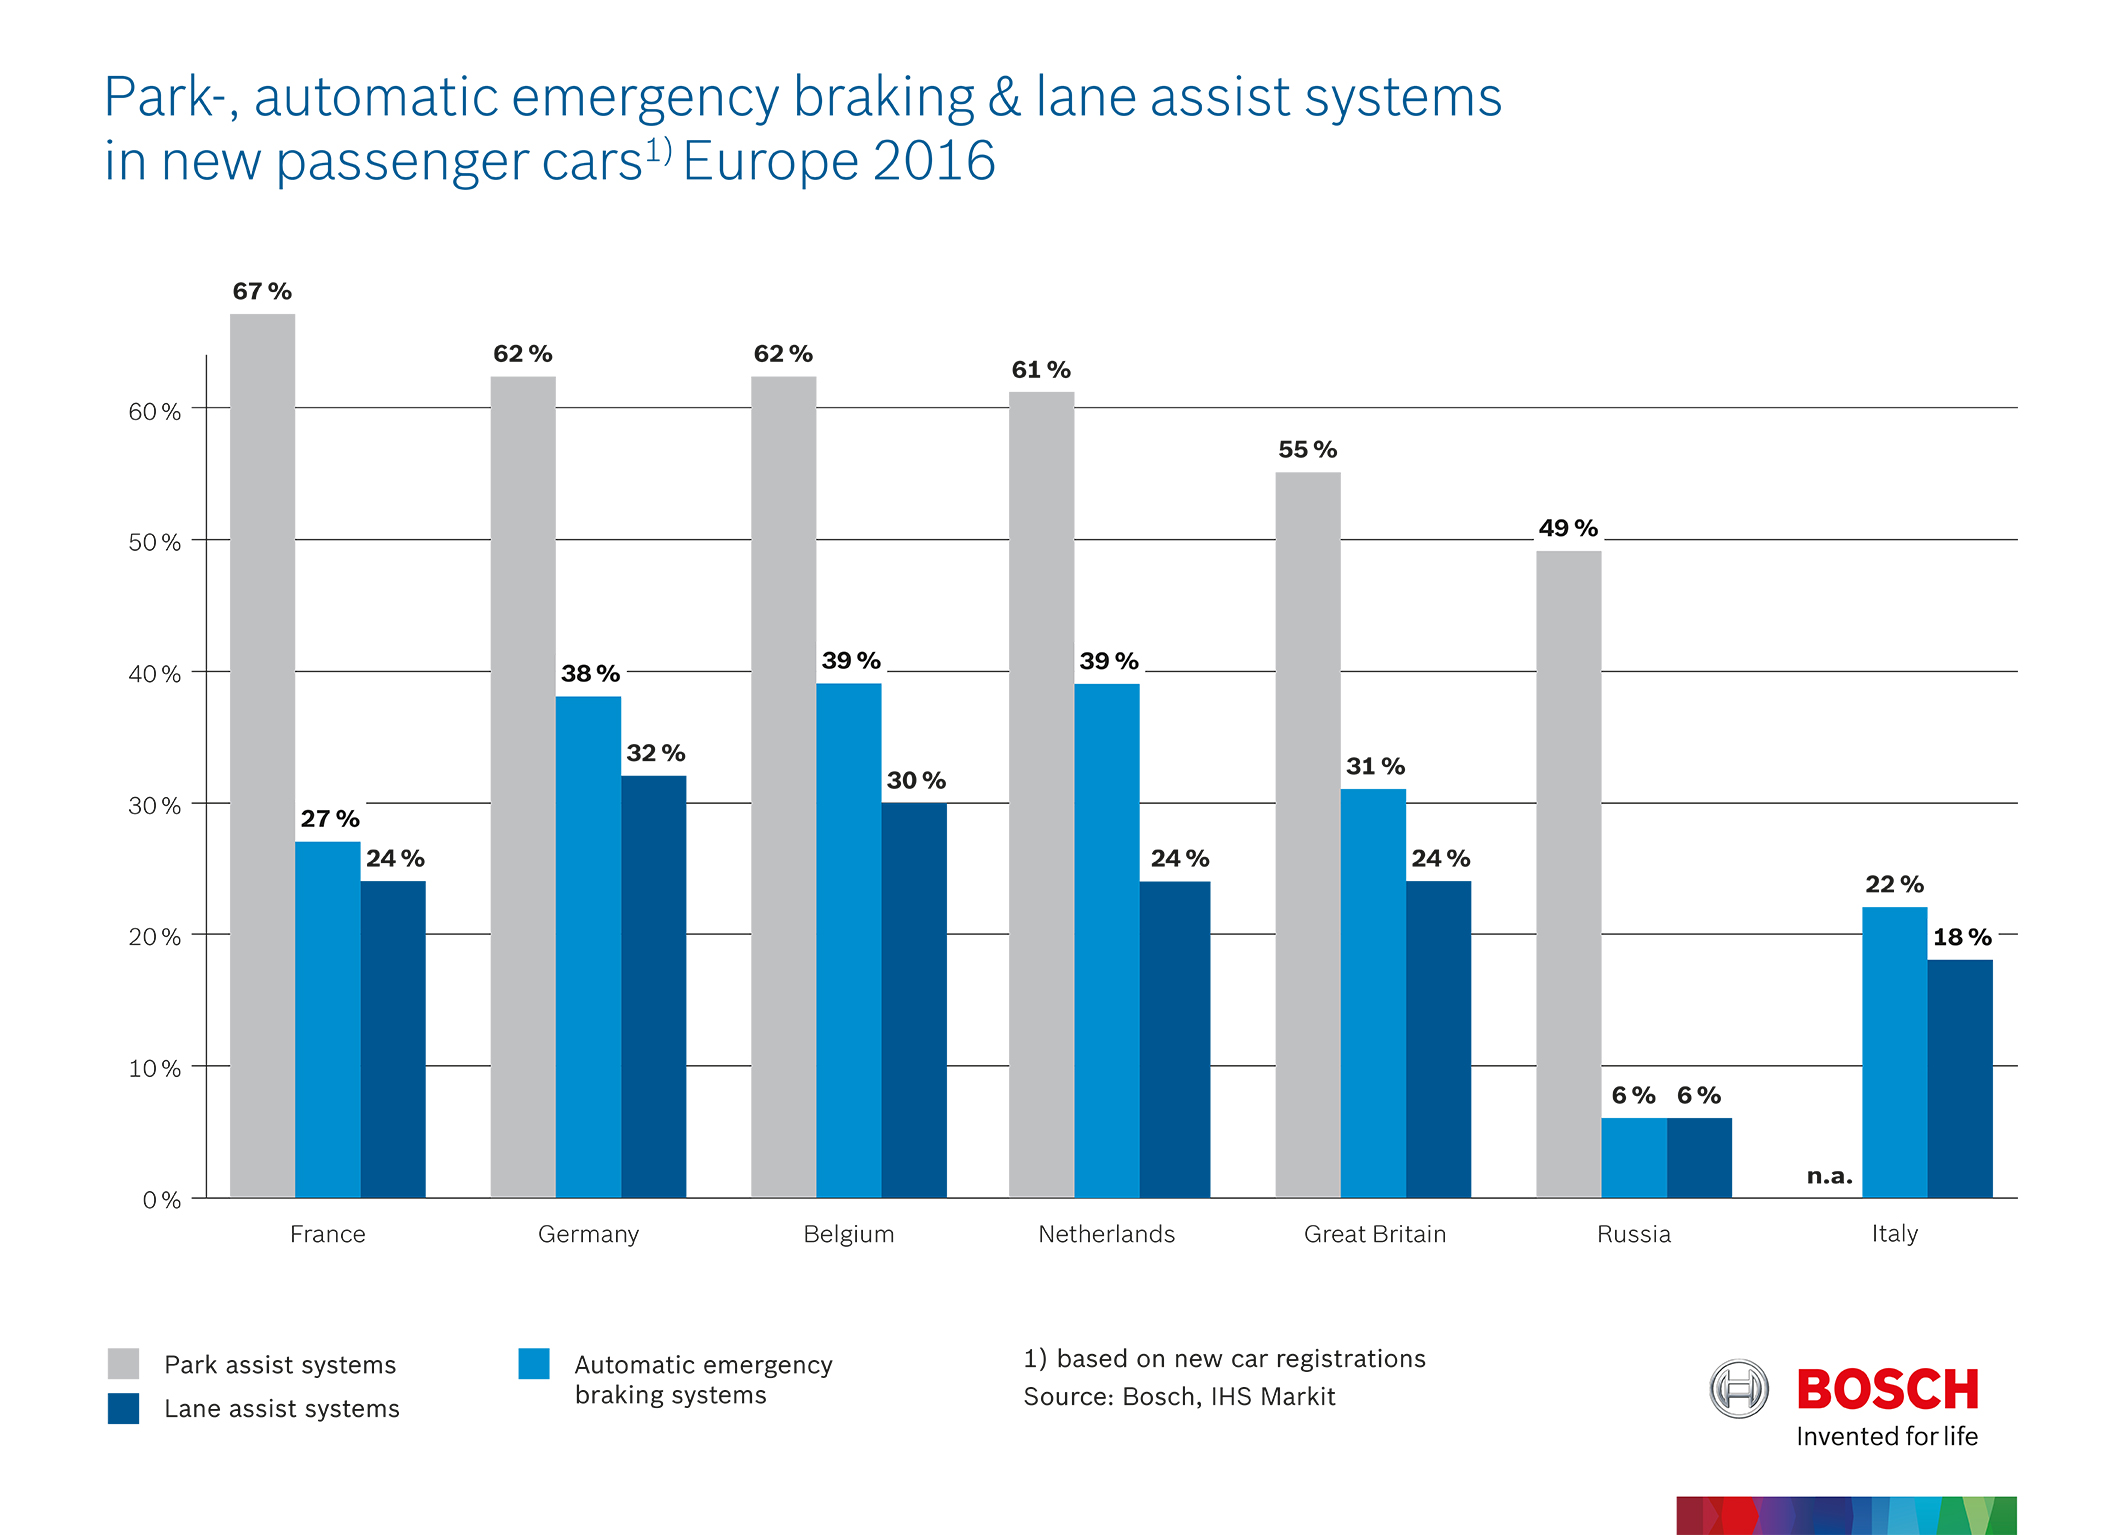 Park-, automatic emergency braking & lane assist systems in new passenger cars, Europe 2016